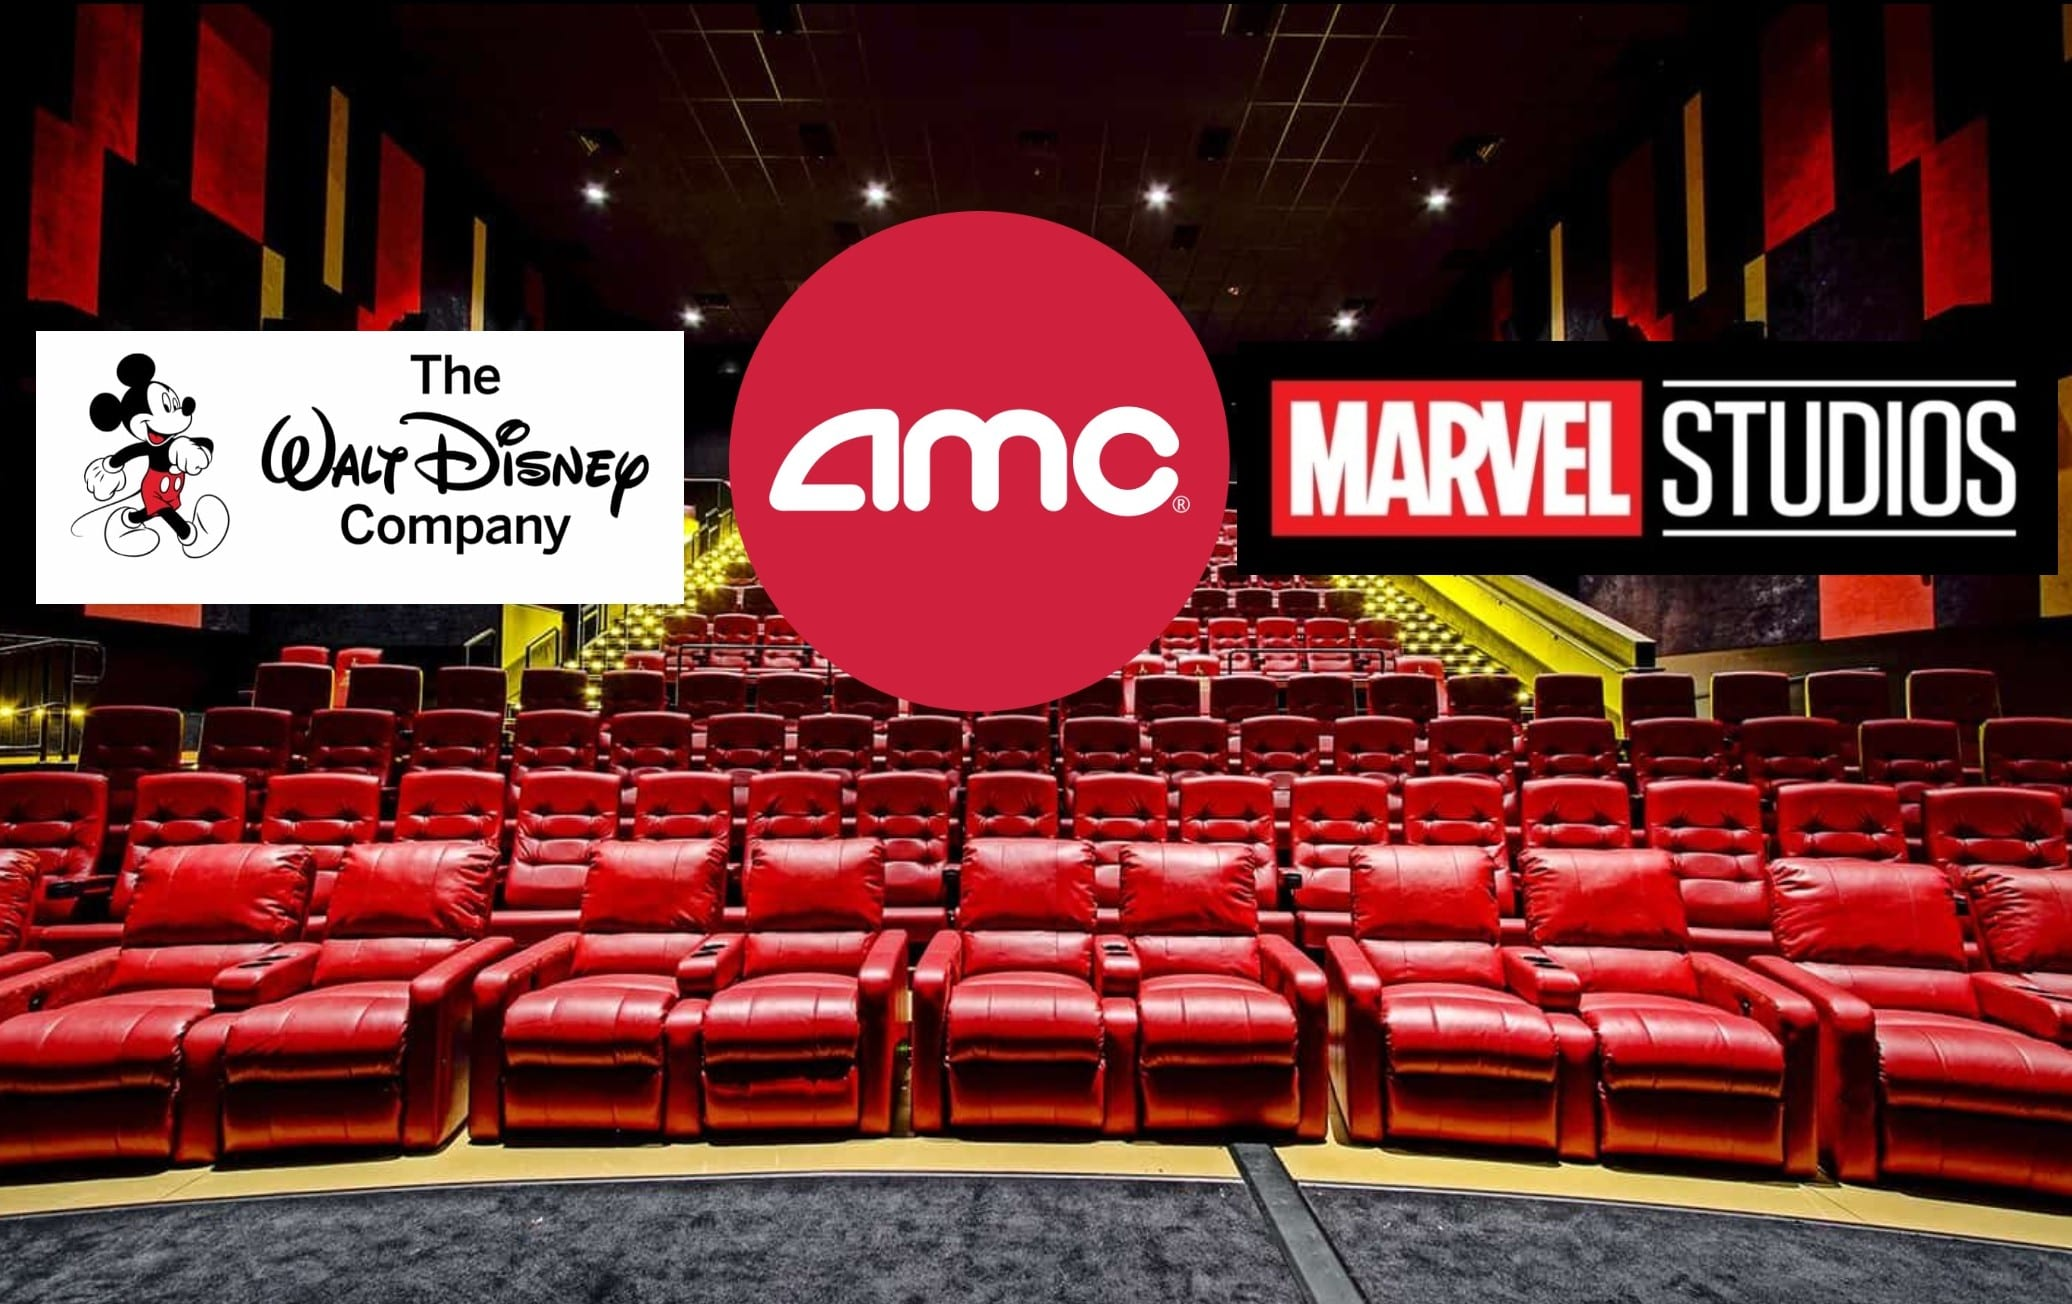 Don't expect future MCU films to start arriving on VOD after only 17 days in theaters